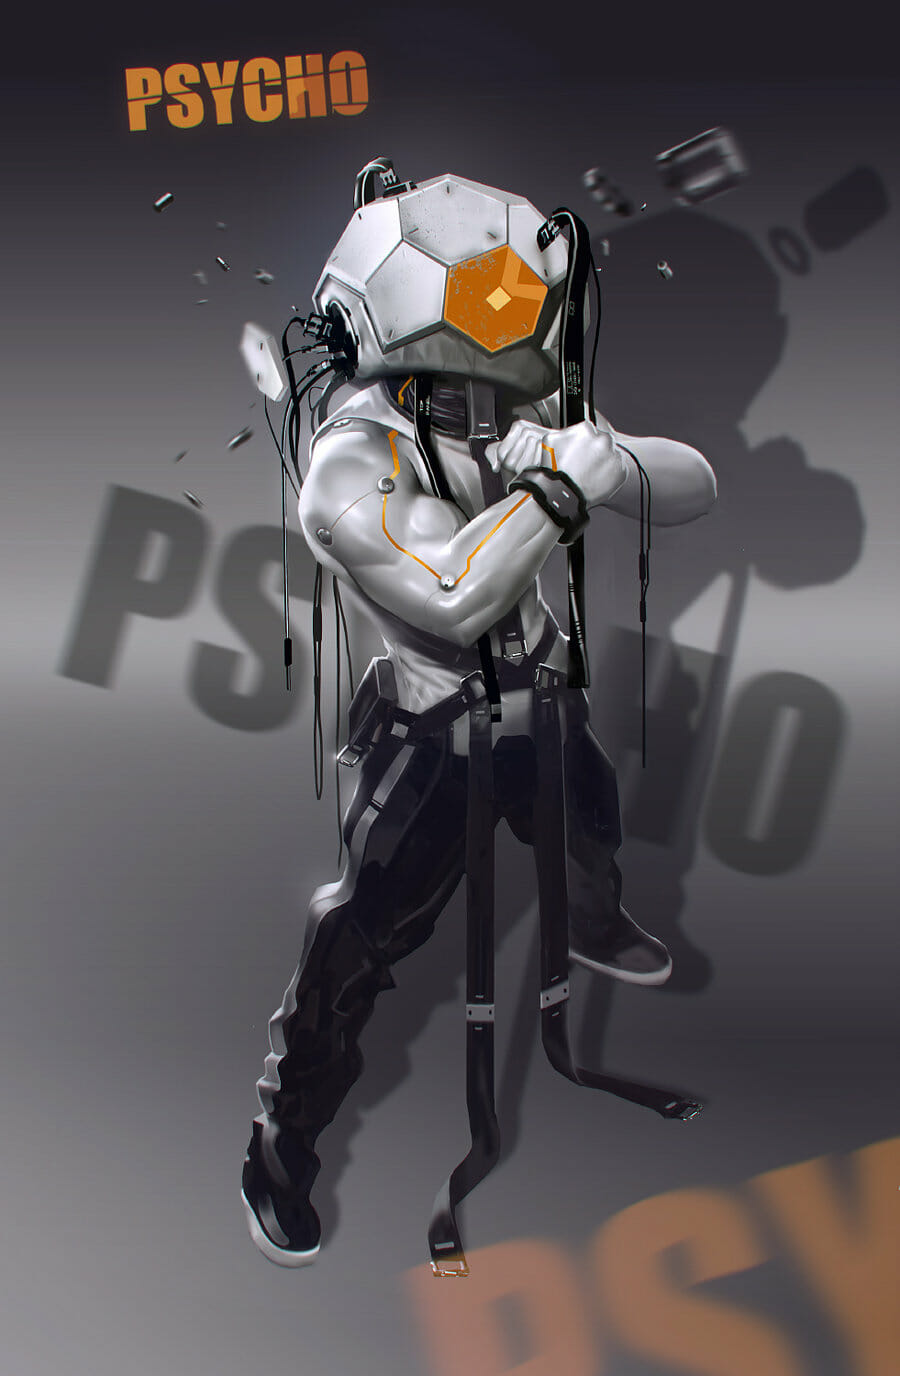 psycho_by_niconoff-d6t2om5